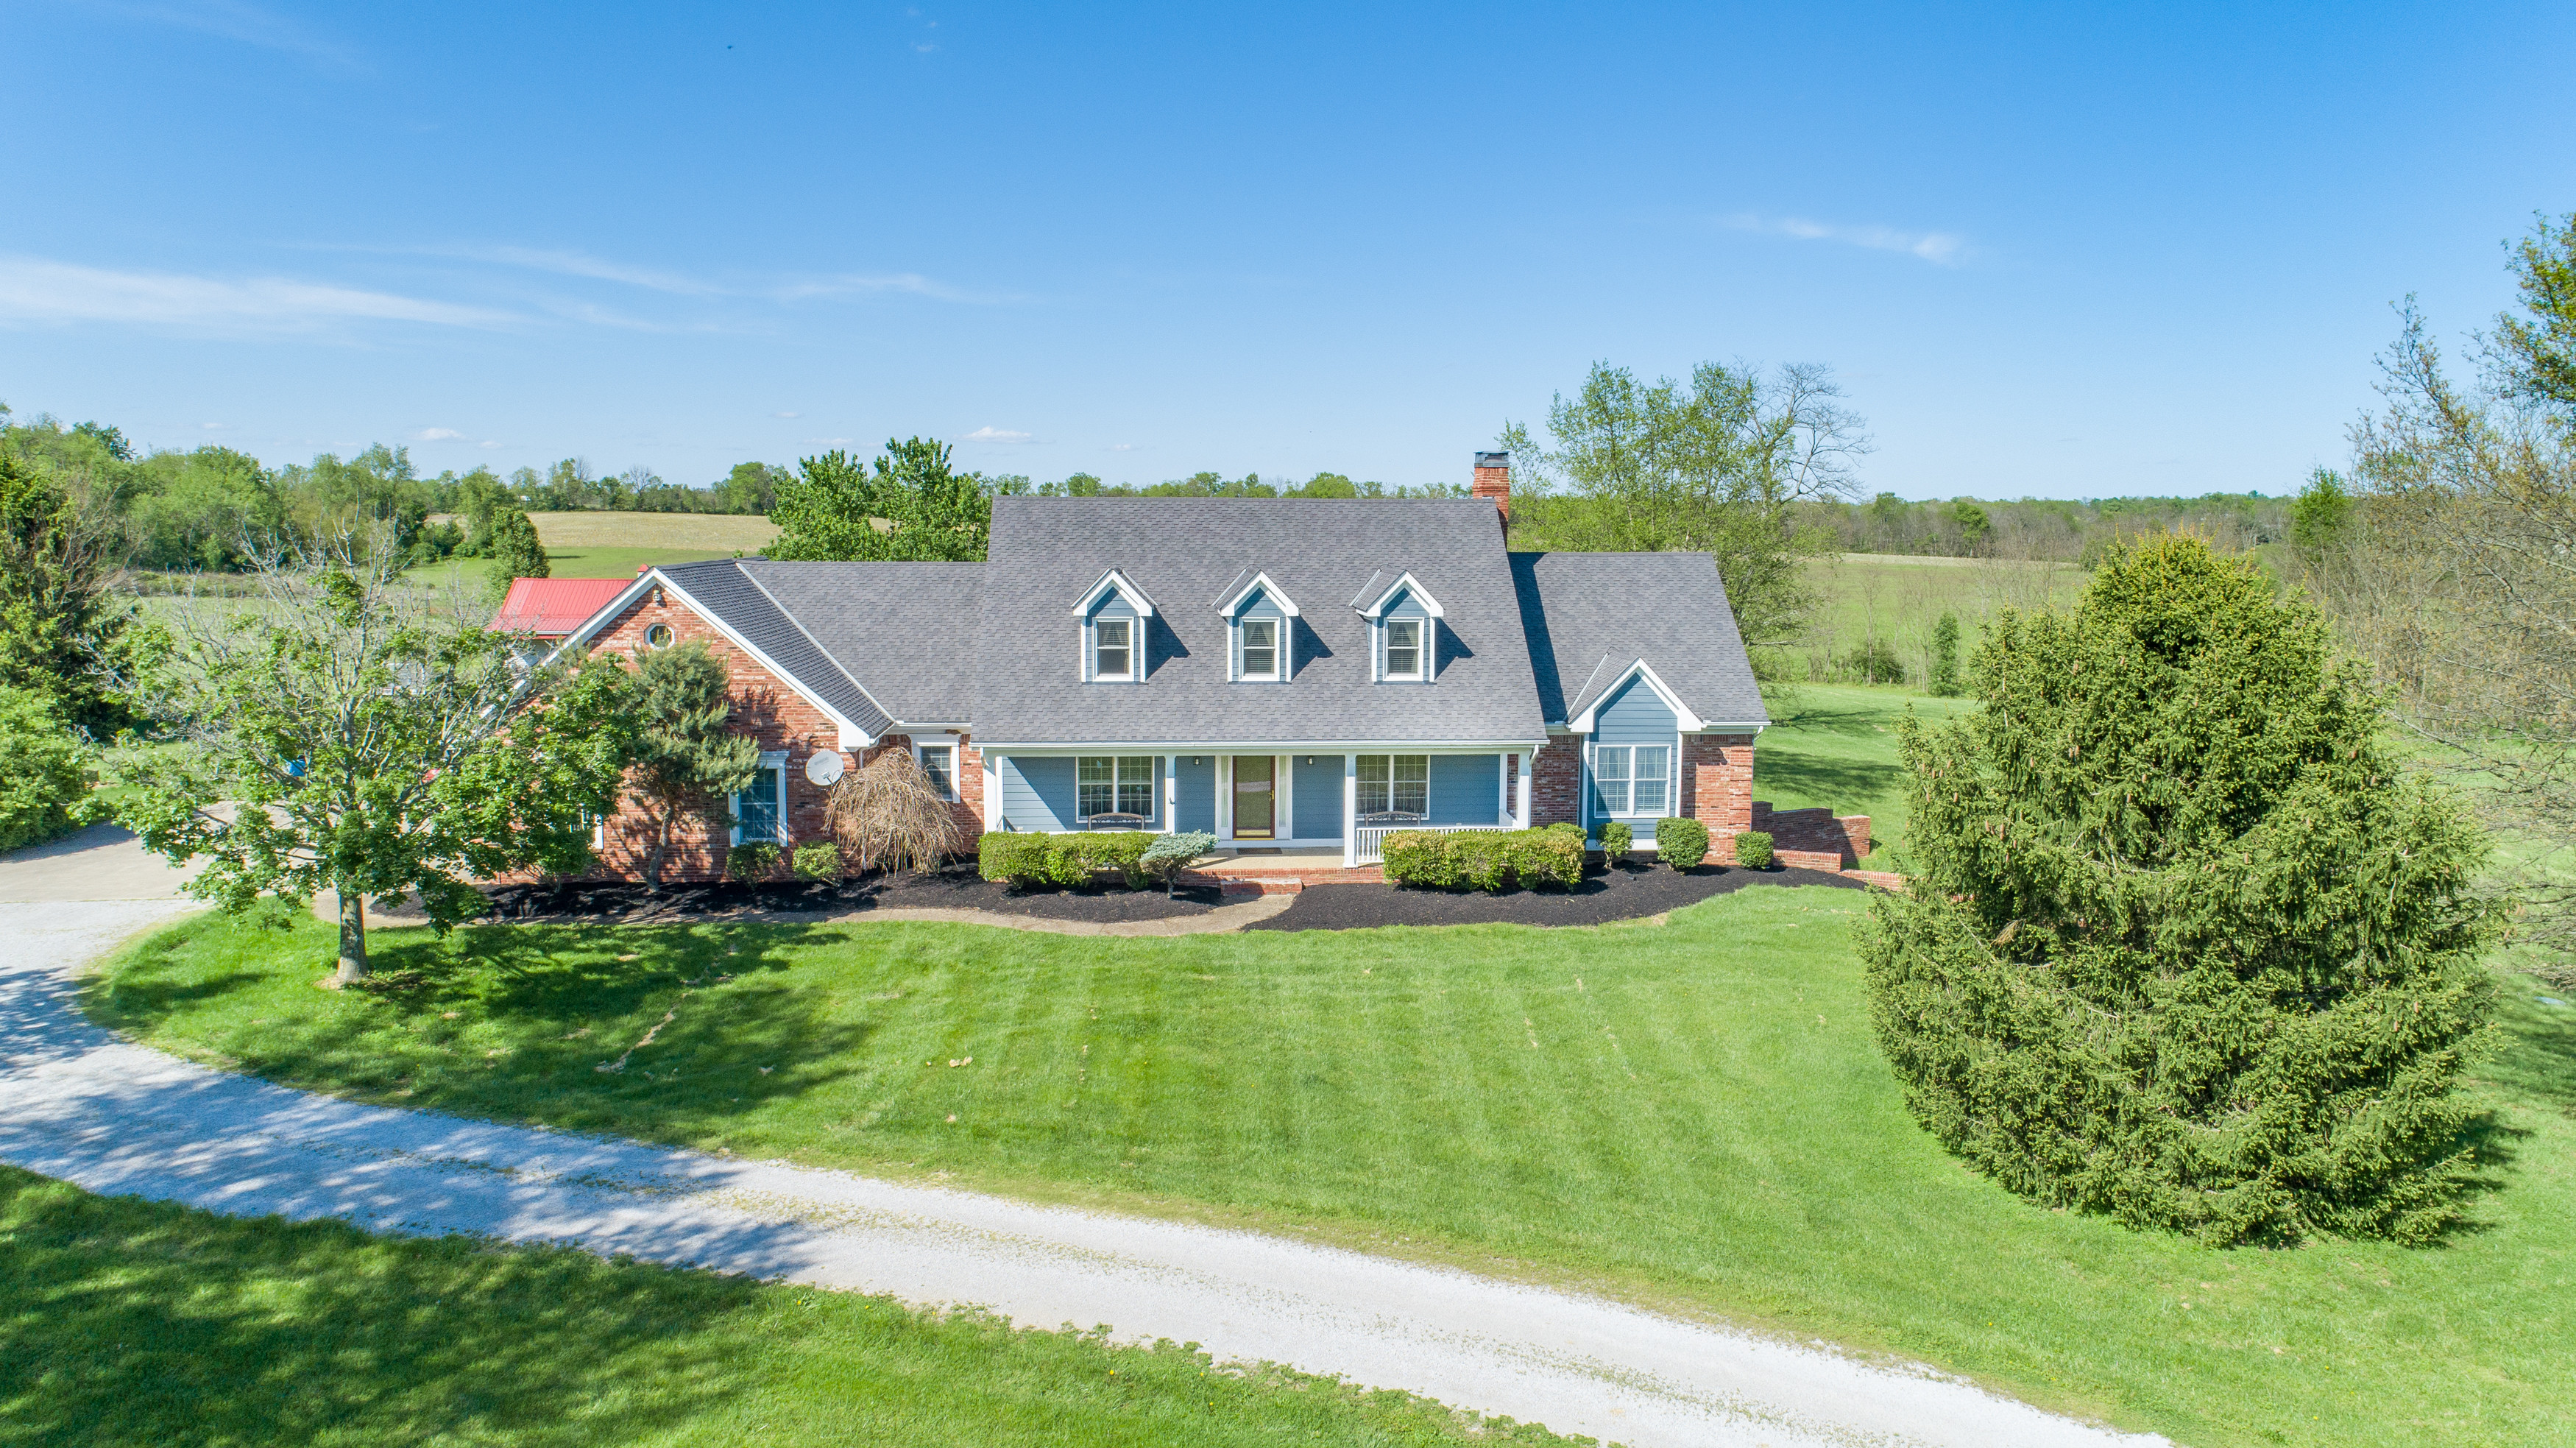 Real Estate Exterior Aerial Photography